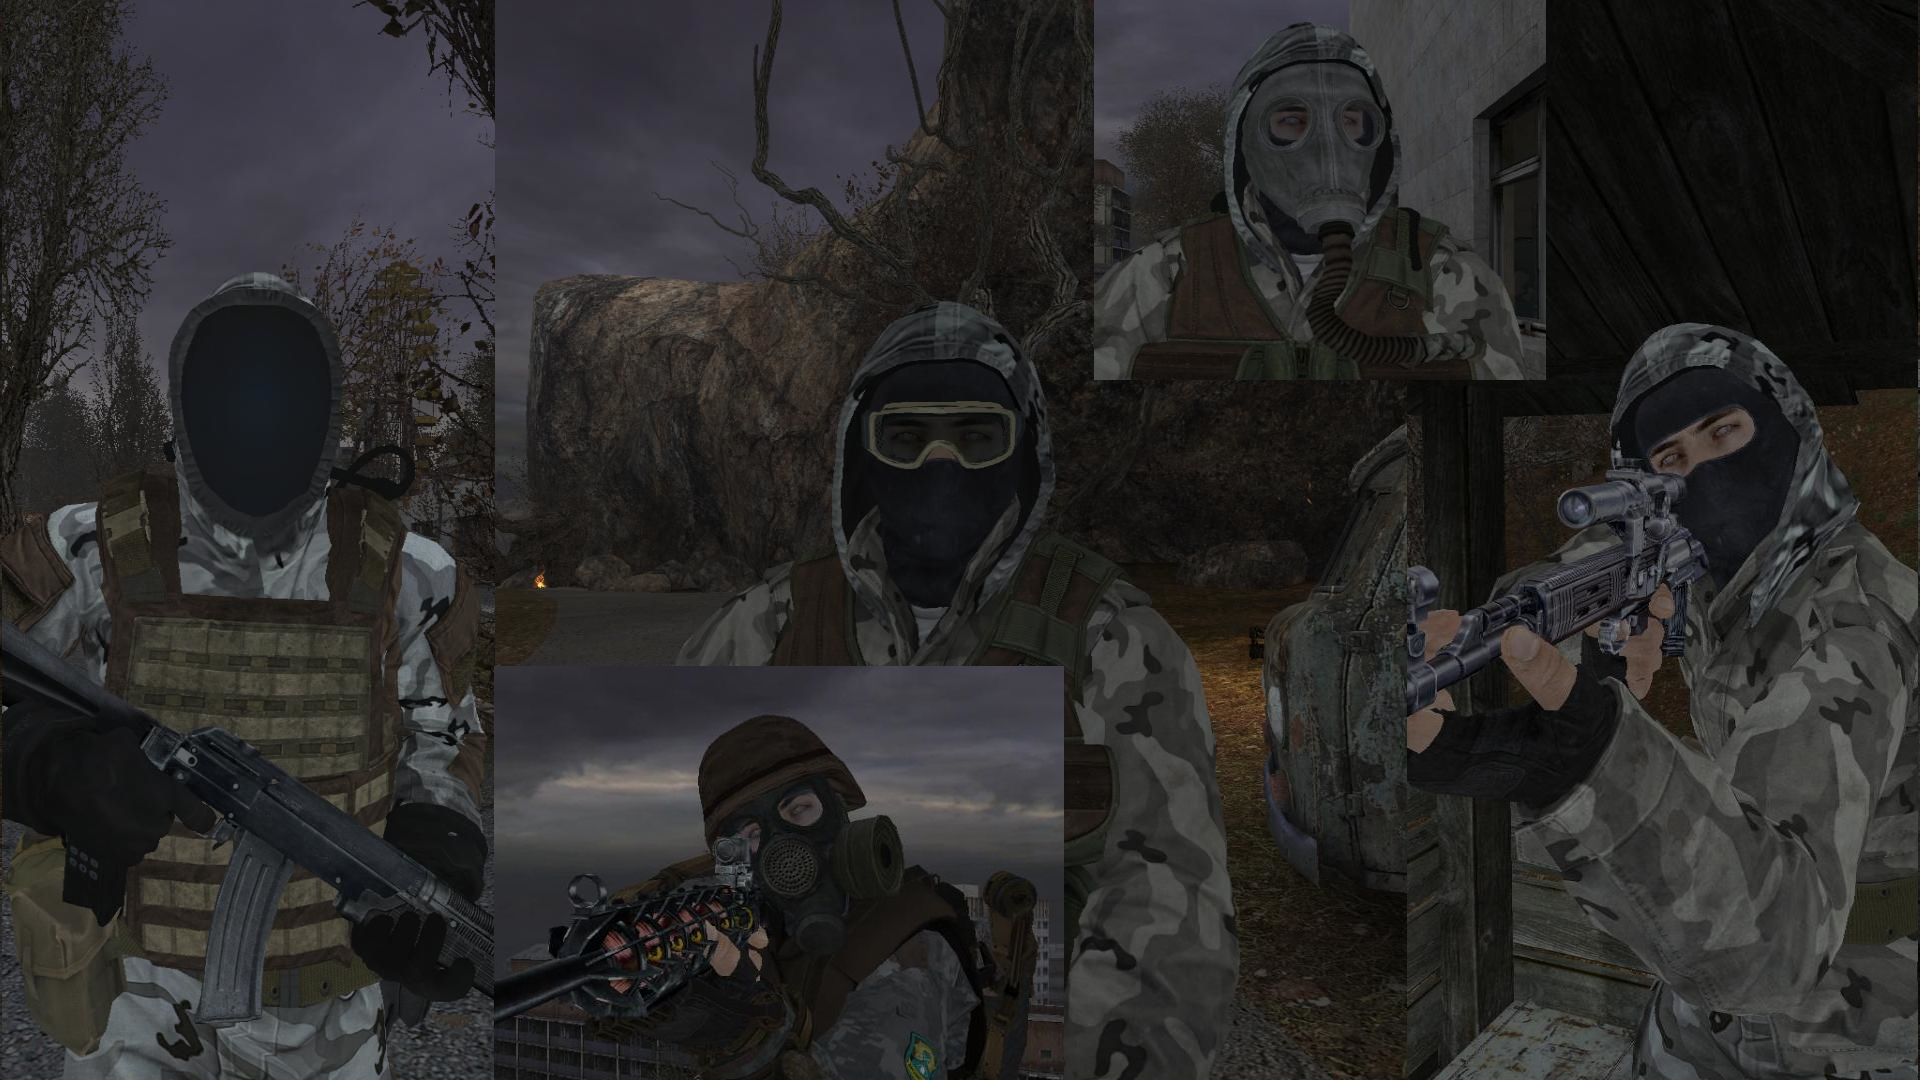 Hd Monolith 10 Image Shadow Of Chernobyl Hd Models Addon For